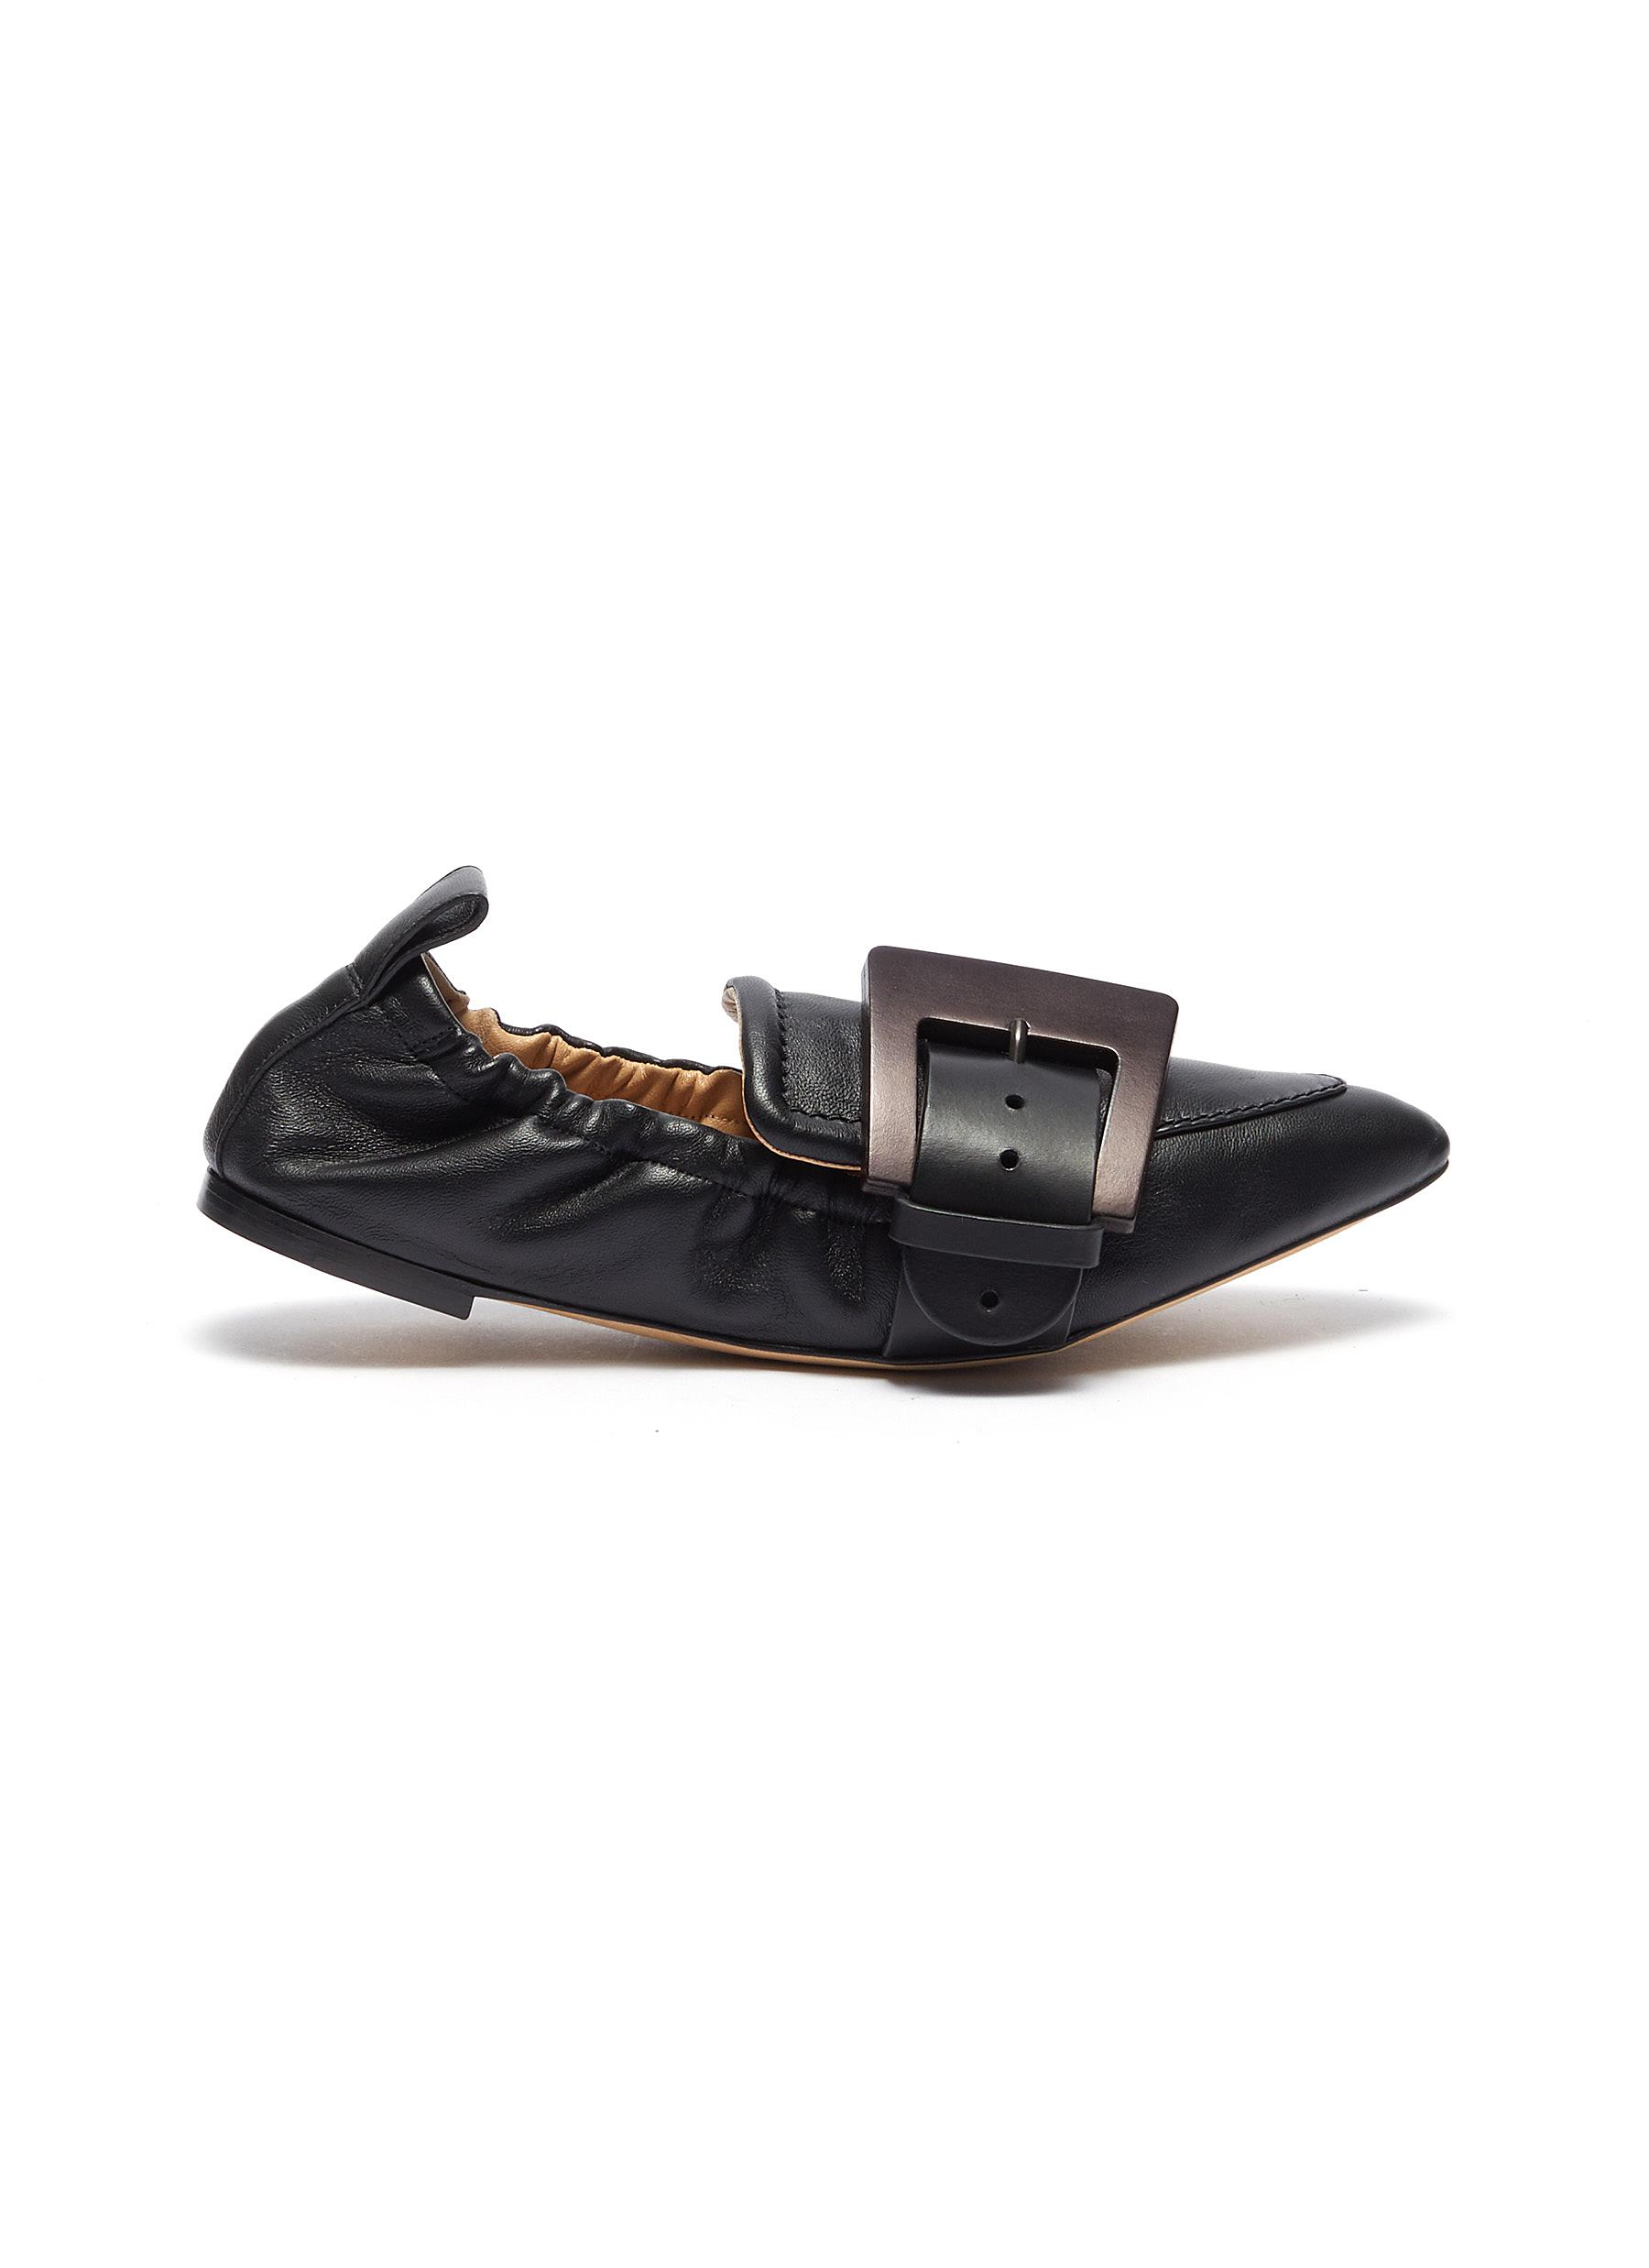 Willy buckle elastic leather loafers by Chloé